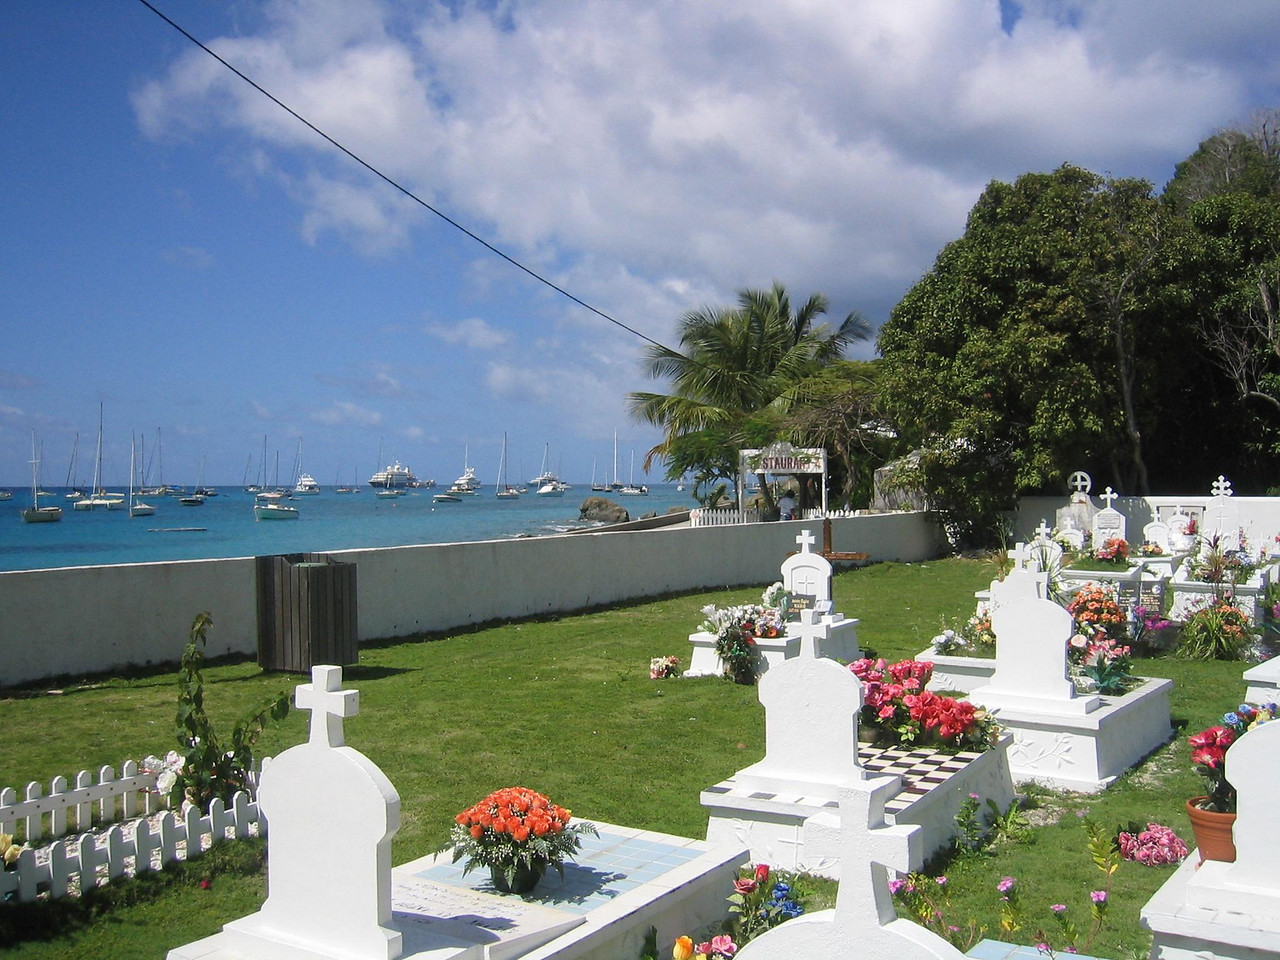 The cemetary in Public overlooking the Caribbean; St. Martin is on the horizon.